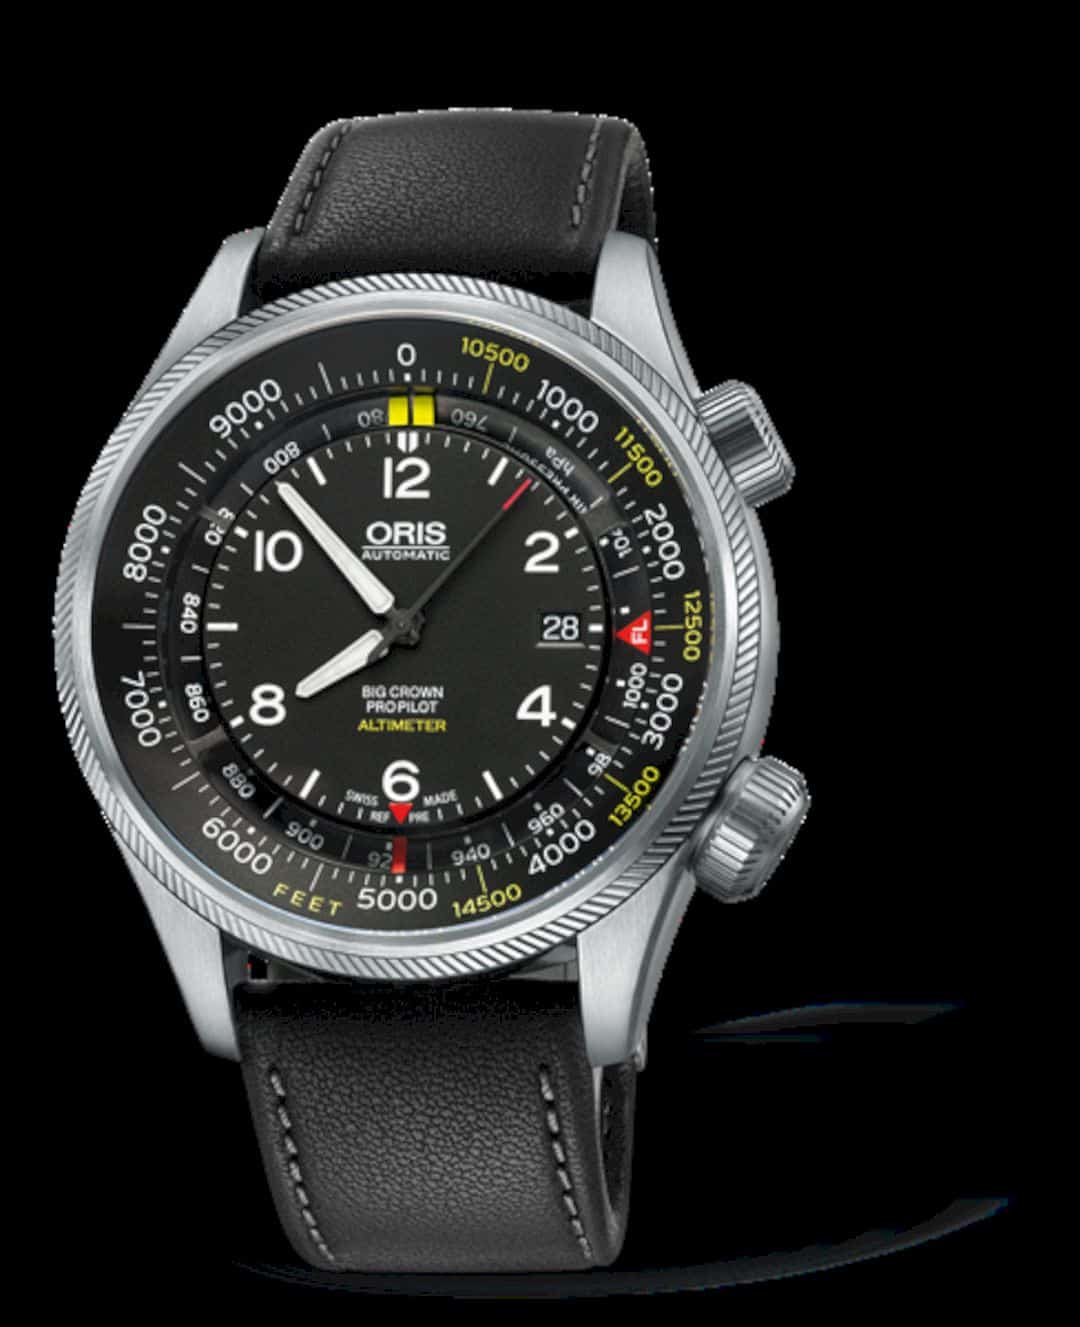 Oris Big Crown Propilot Altimeter With Feet Scale 2